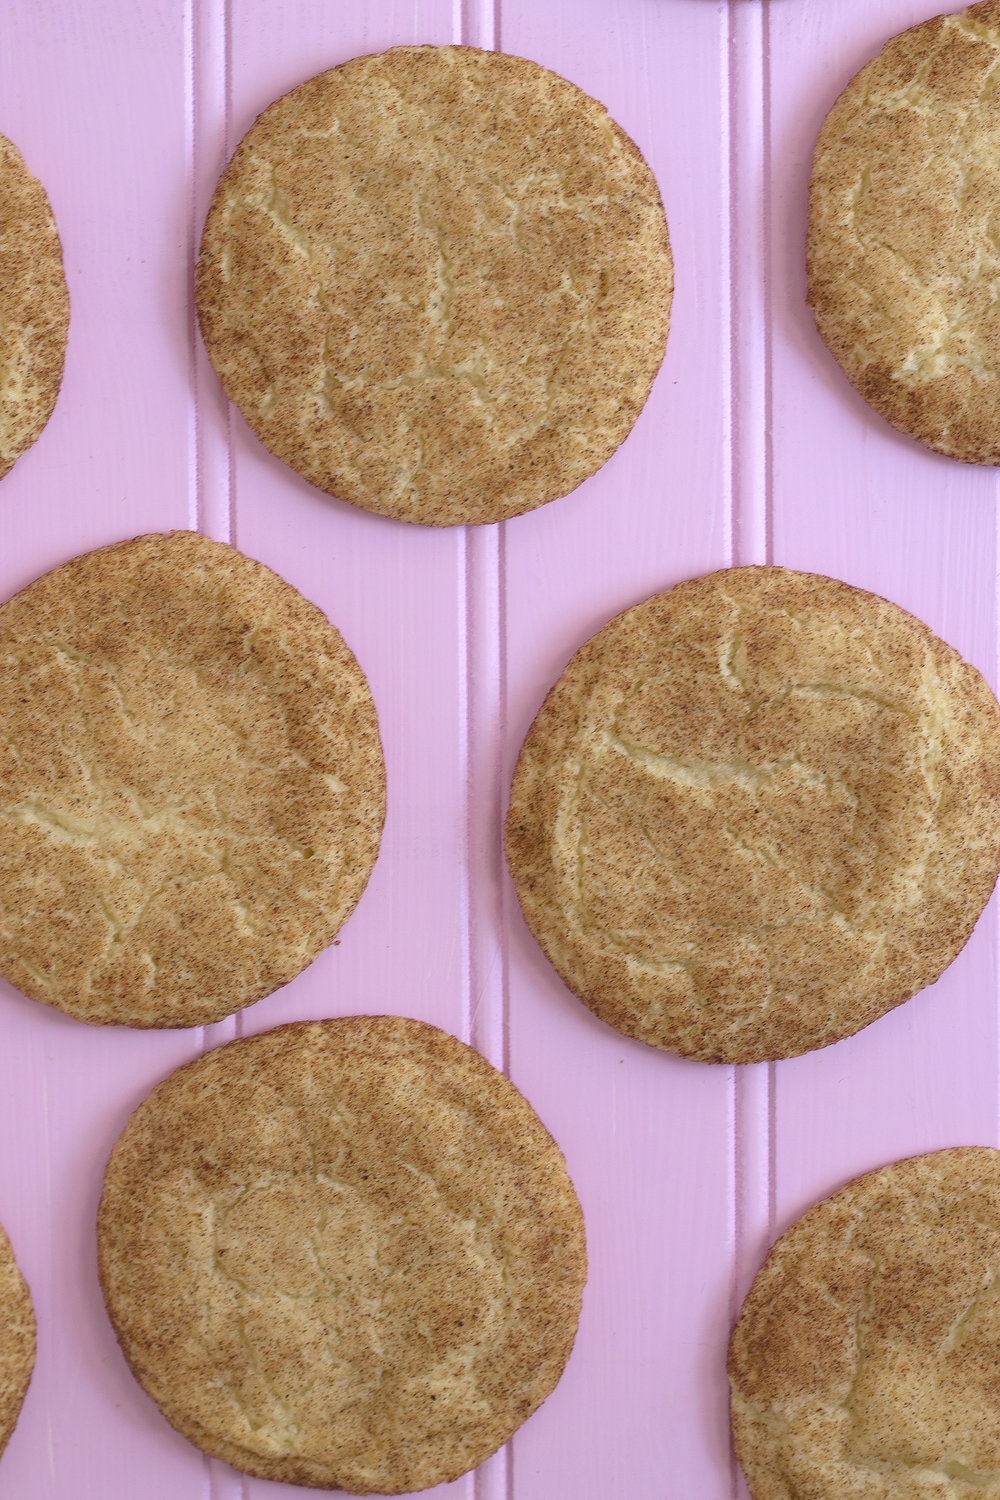 Get the recipe for these Chai Snickerdoodles on Unusually Lovely blog